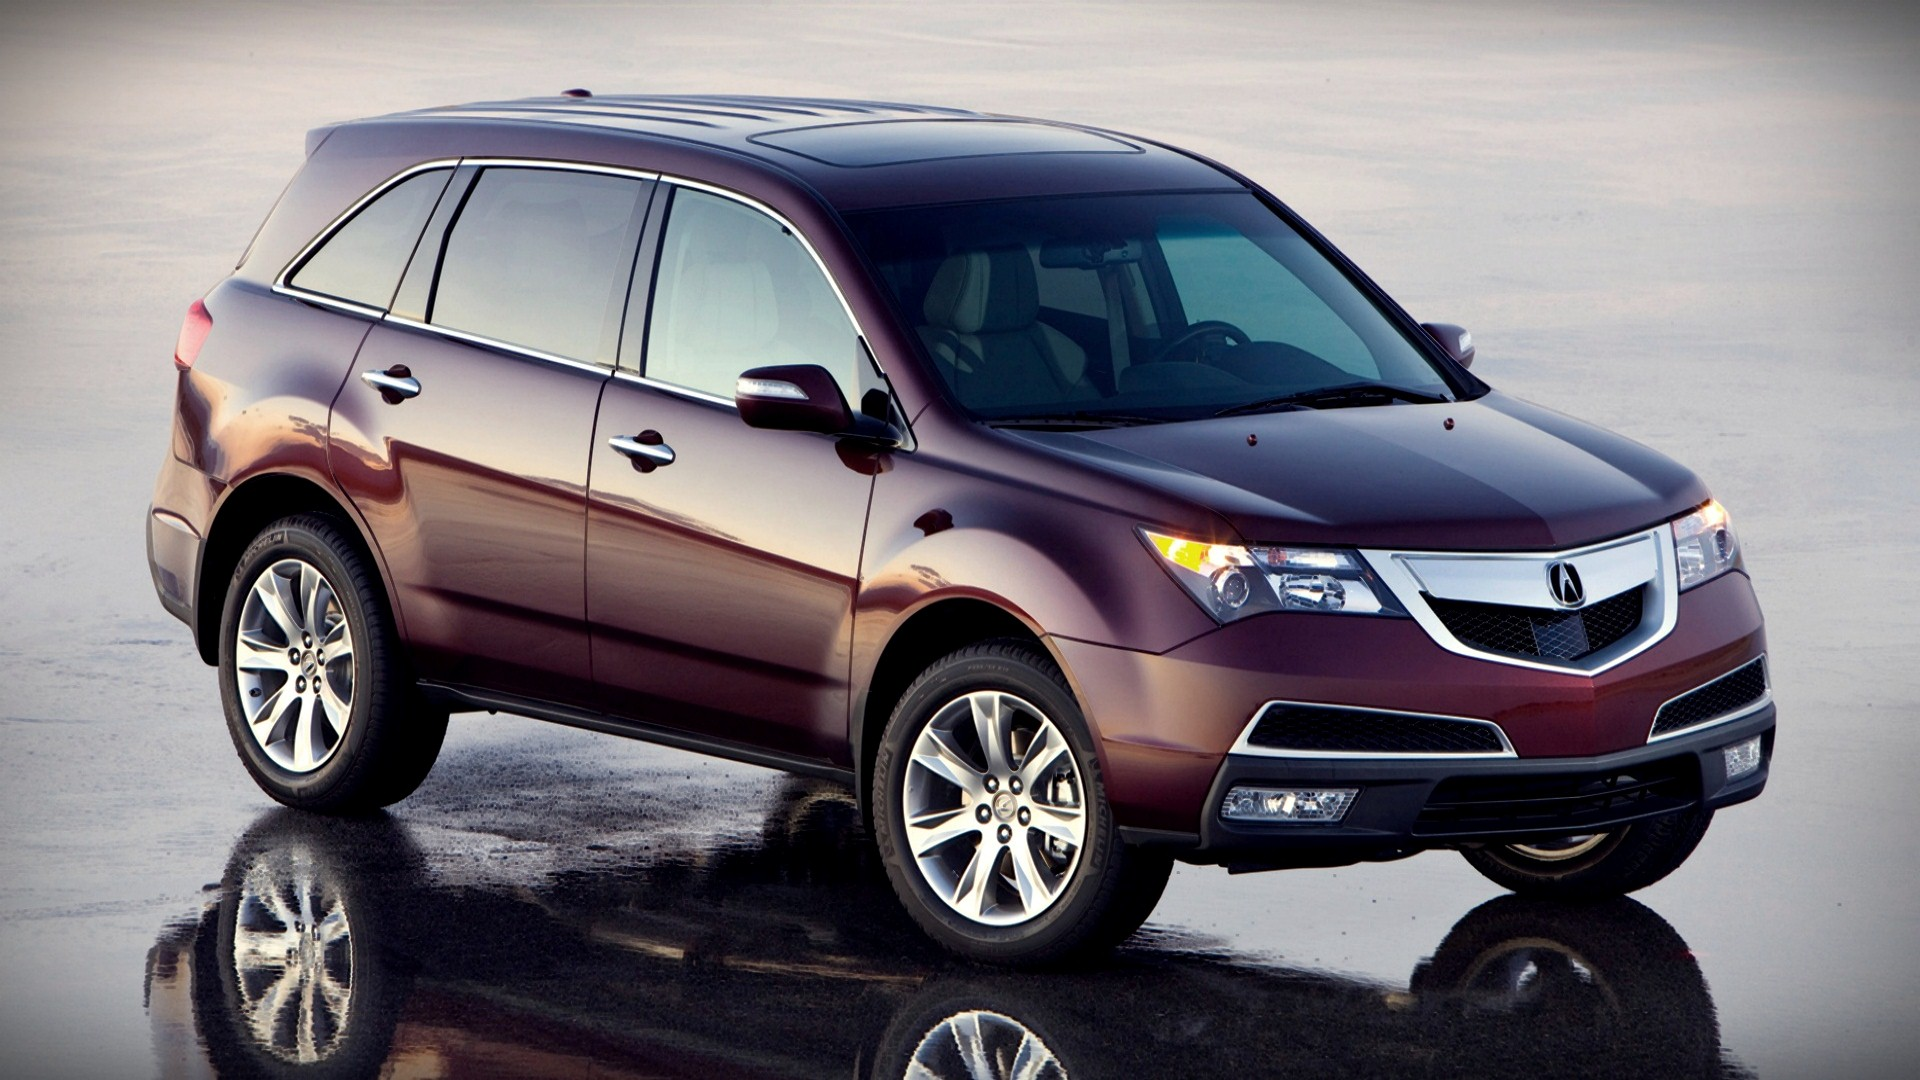 Acura-Mdx-Maintenance-Schedule-Download-x-x-1920-x-1080-1920-x-1080-wallpaper-wpc9002032